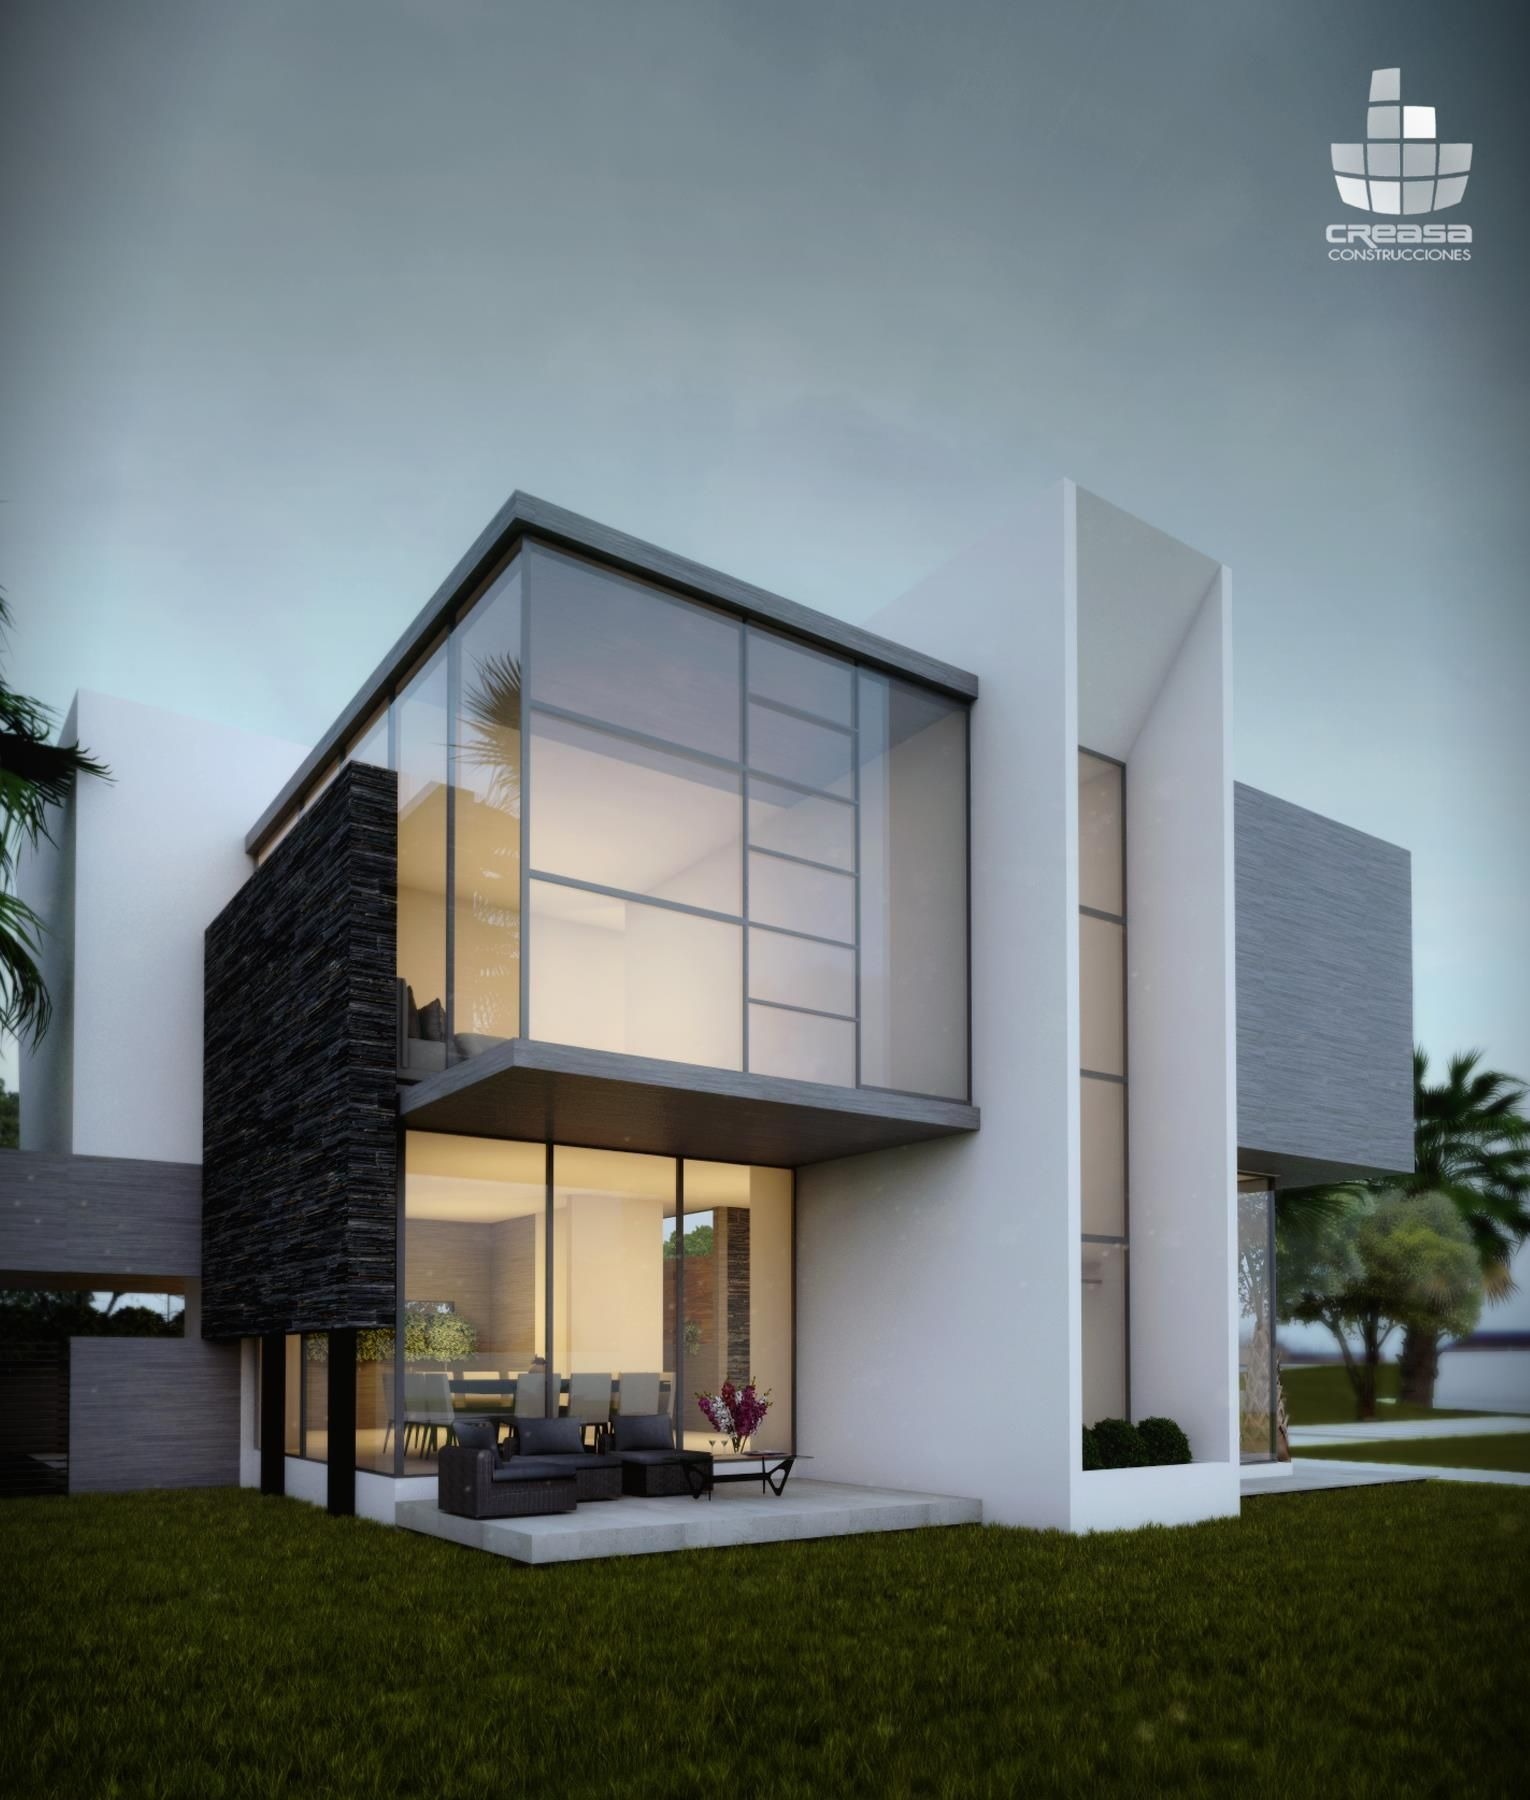 Creasa modern architecture pinterest villas house for Simple and modern house